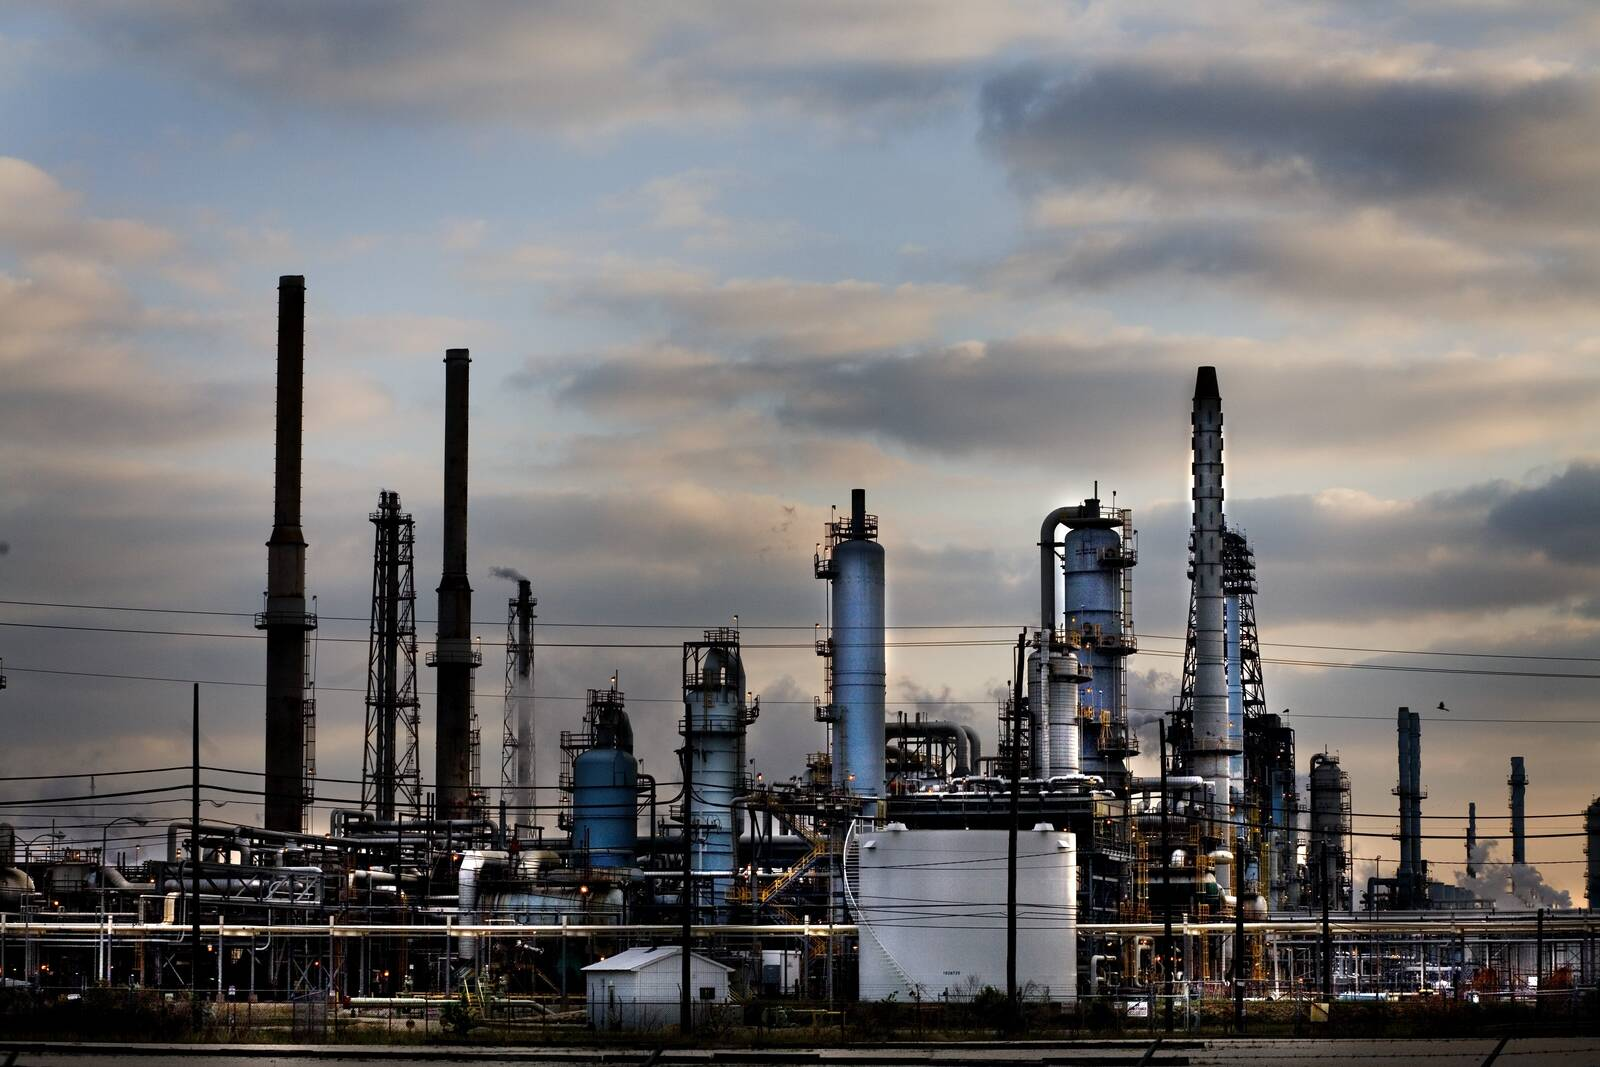 The Baytown Exxon gas refinery produces the more processed oil than any other facility in the United States on March 23, 2006 in Baytown, TX. (Photo by Benjamin Lowy/Reportage by Getty Images)